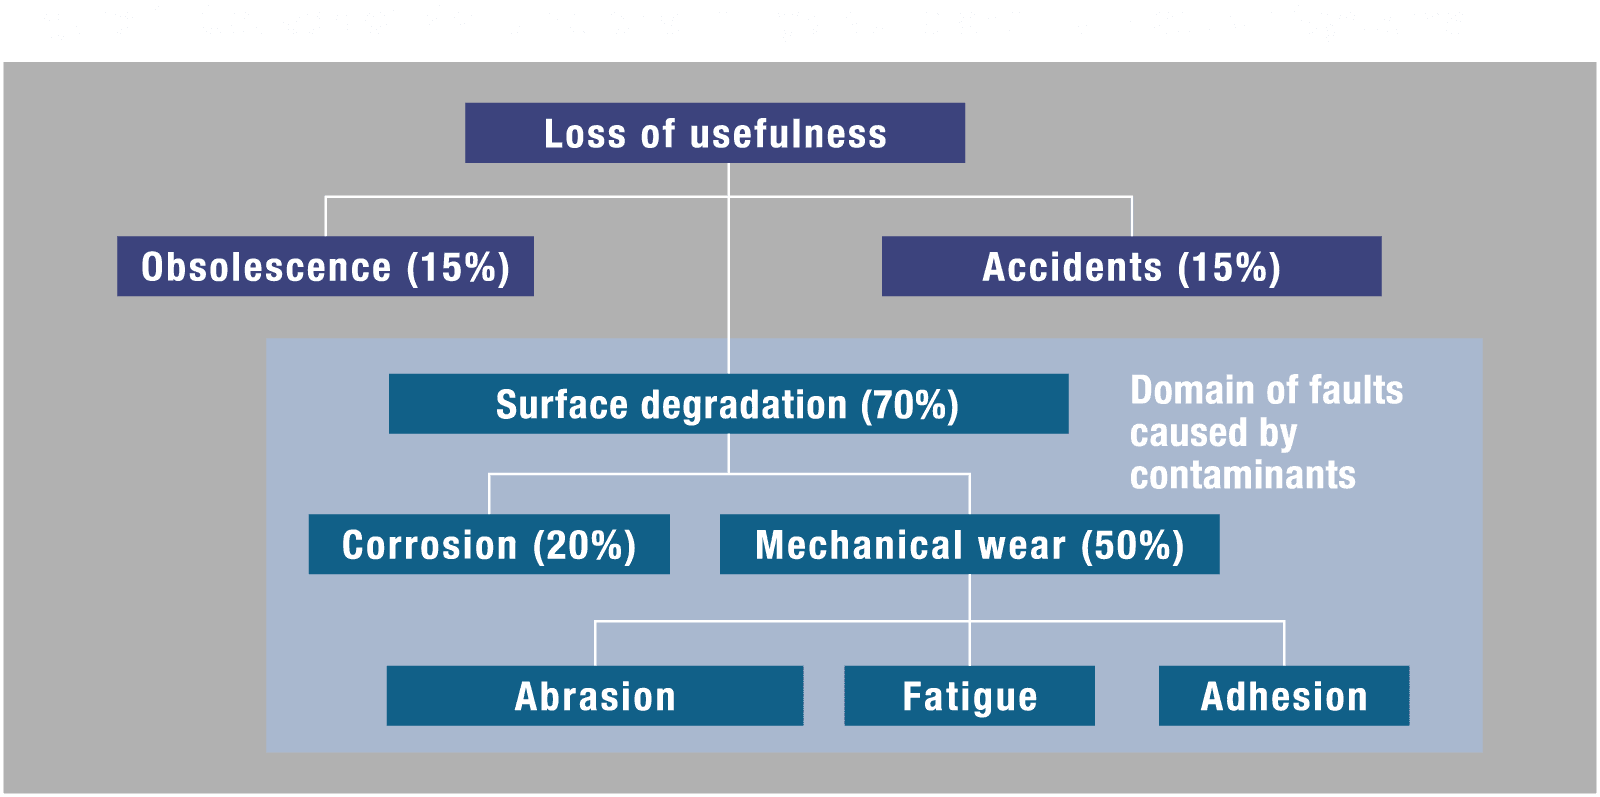 Figure 1) Causes of Malfunctions in Hydraulic and Lubrication Systems